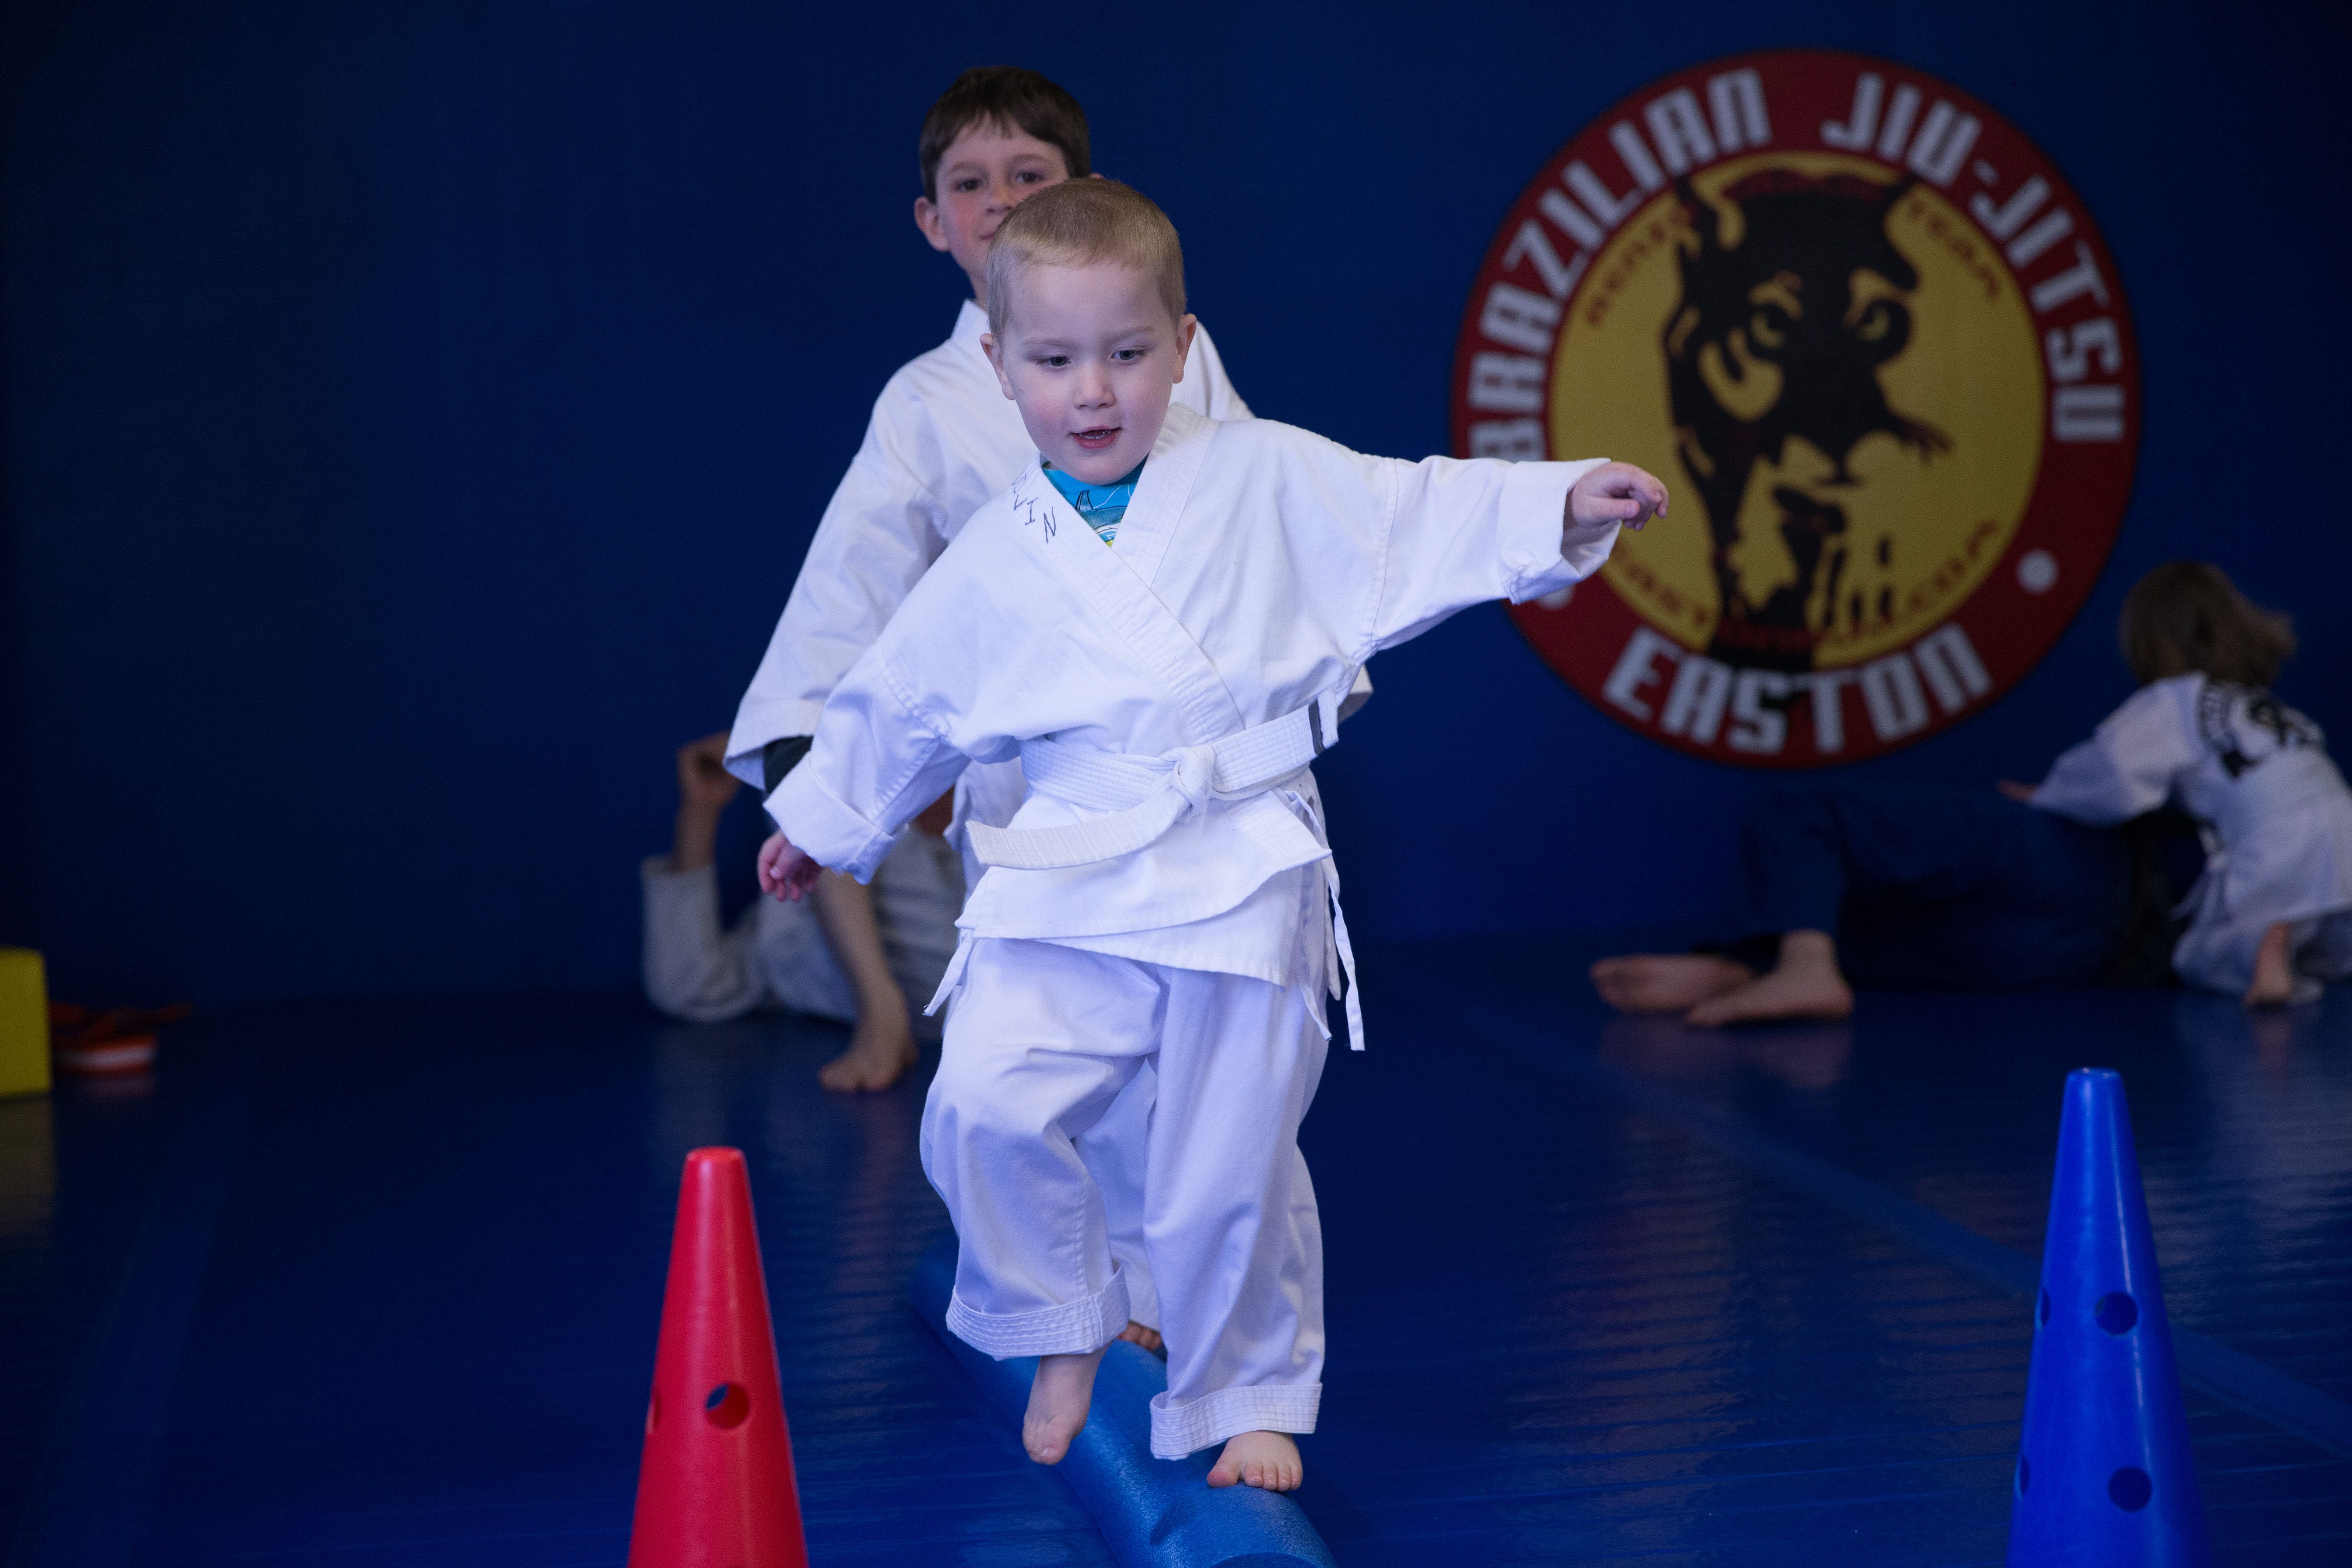 Much more fun version of walk the plank martial arts